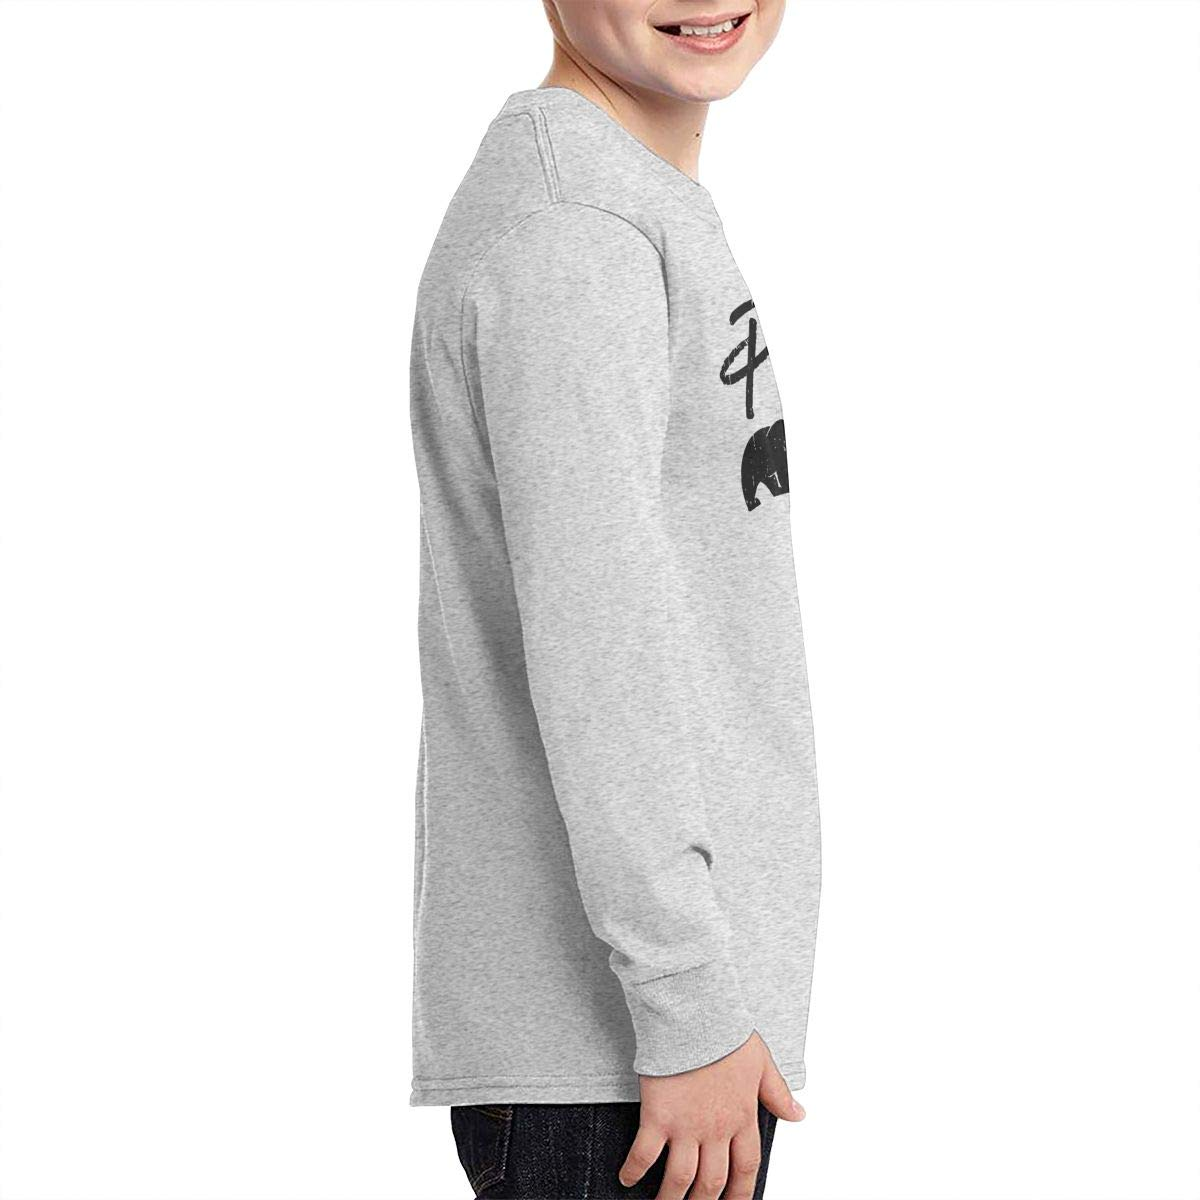 Papa Bear Youth Long Sleeve Moisture Wicking Athletic T Shirts Casual Tee Graphic Tops for Teen Boys Girls